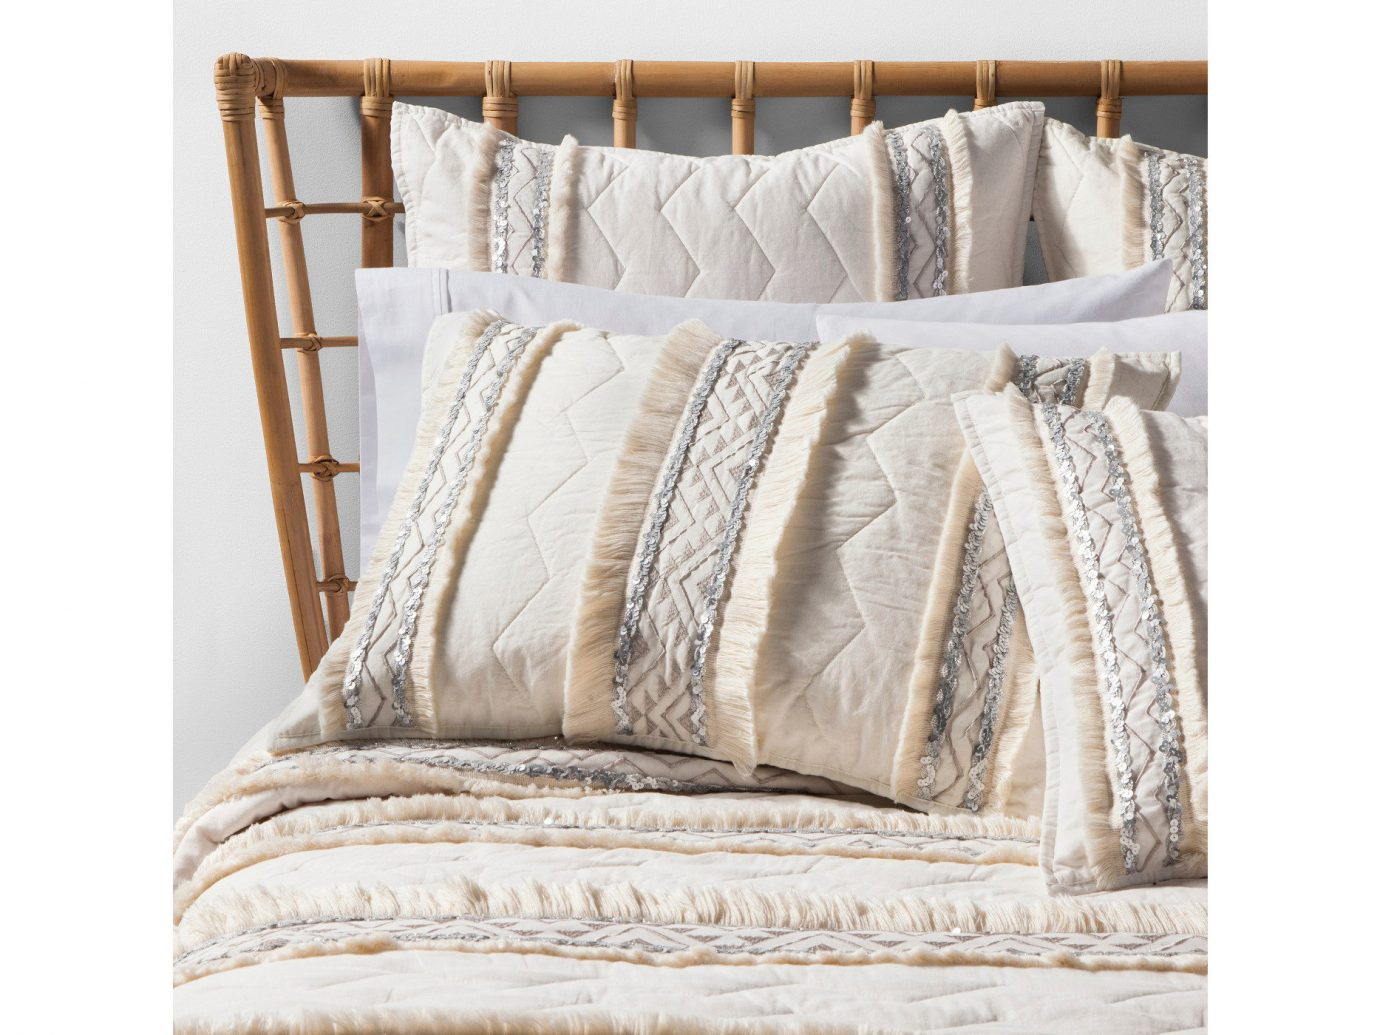 Style + Design Travel Shop duvet cover bed frame product indoor bed sheet bedding textile linens pillow cushion bed furniture bed skirt bedclothes colored tan